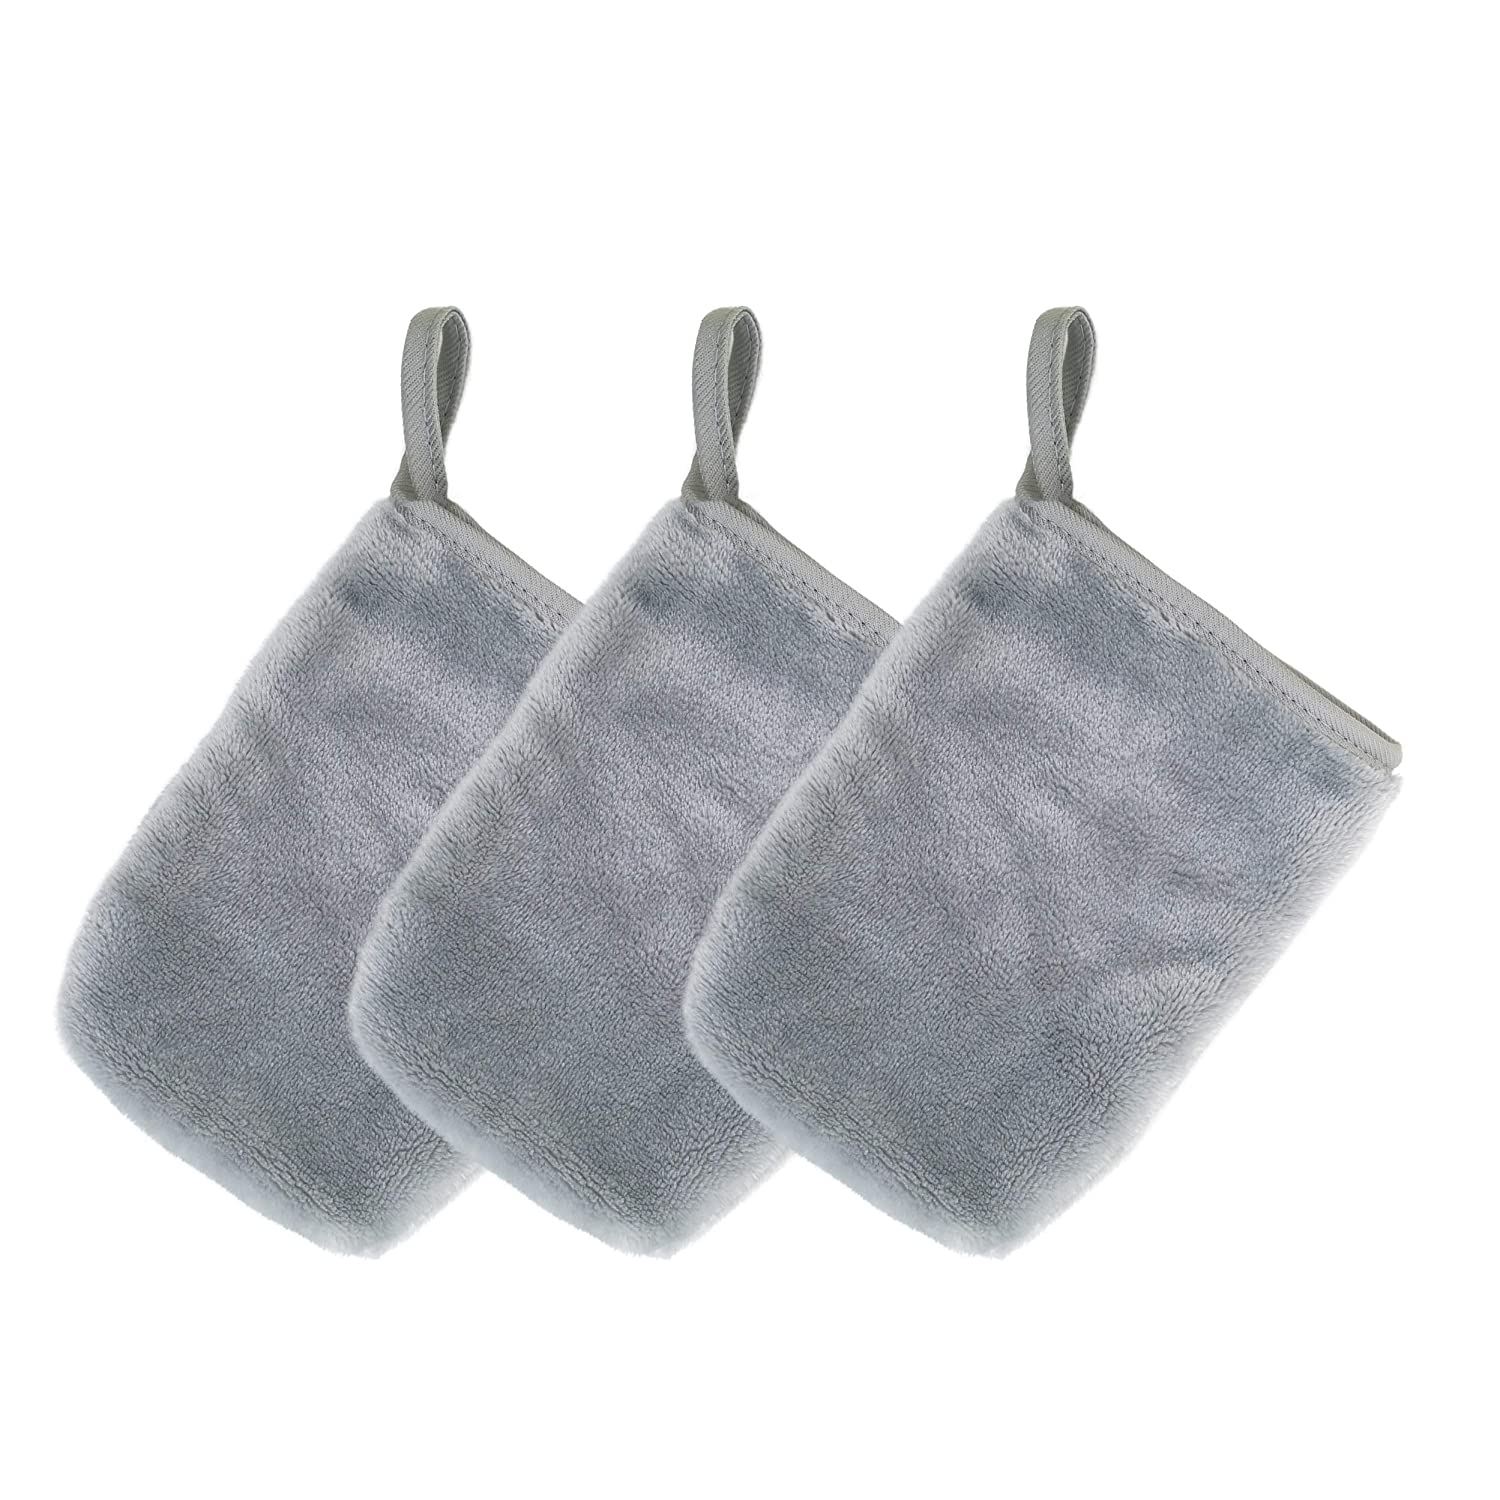 Polyte Hypoallergenic Chemical Free Microfiber Fleece Makeup Remover and Facial Cleansing Cloth Glove 5 x 7 in, 3 Pack (Gray)